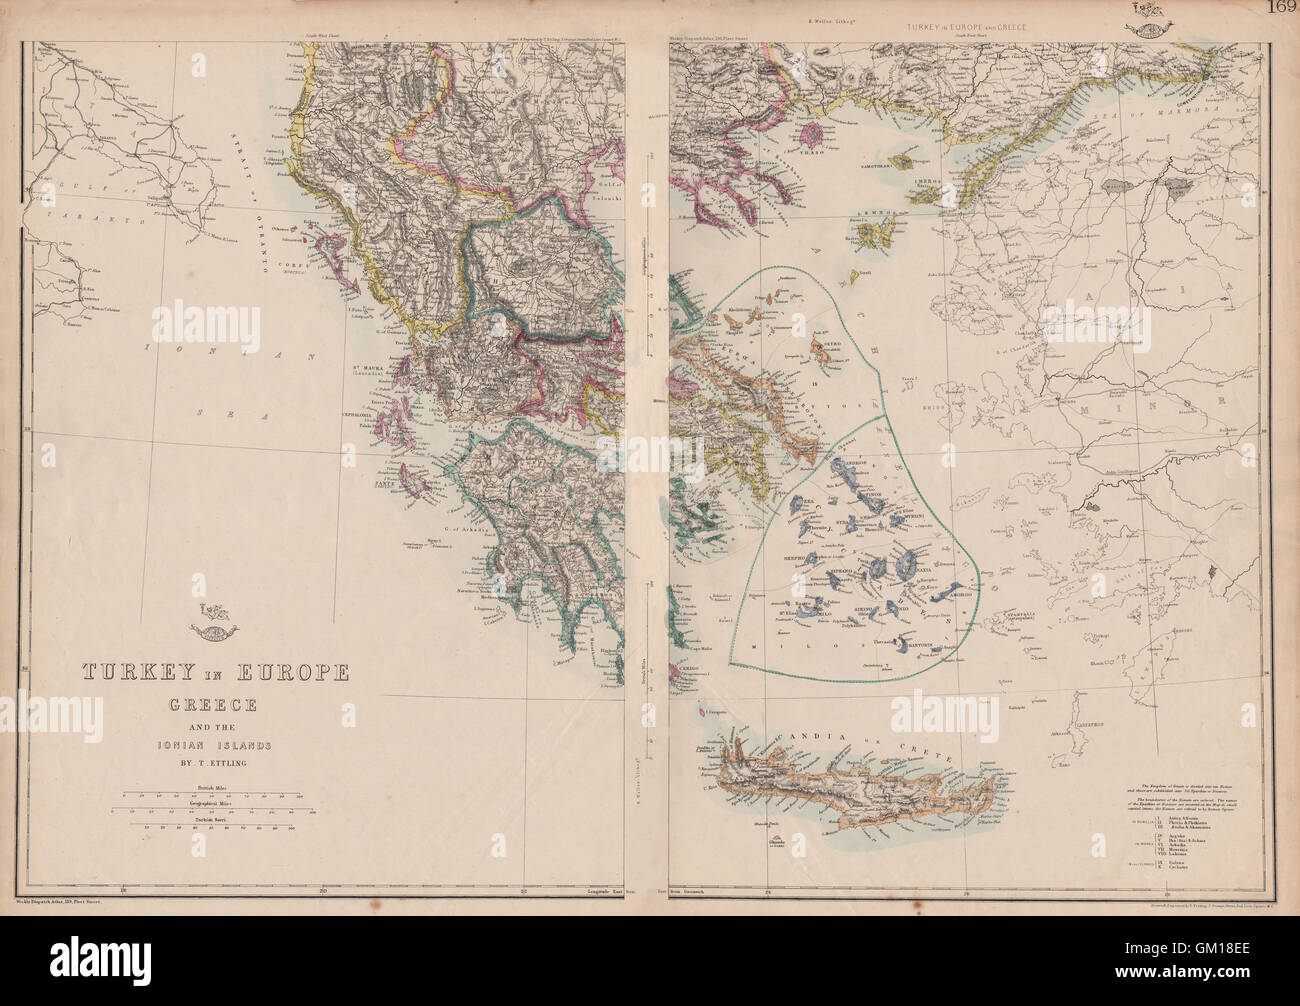 Turkey On Europe Map.Greece Turkey In Europe British Ionian Islands Cyclades Stock Photo